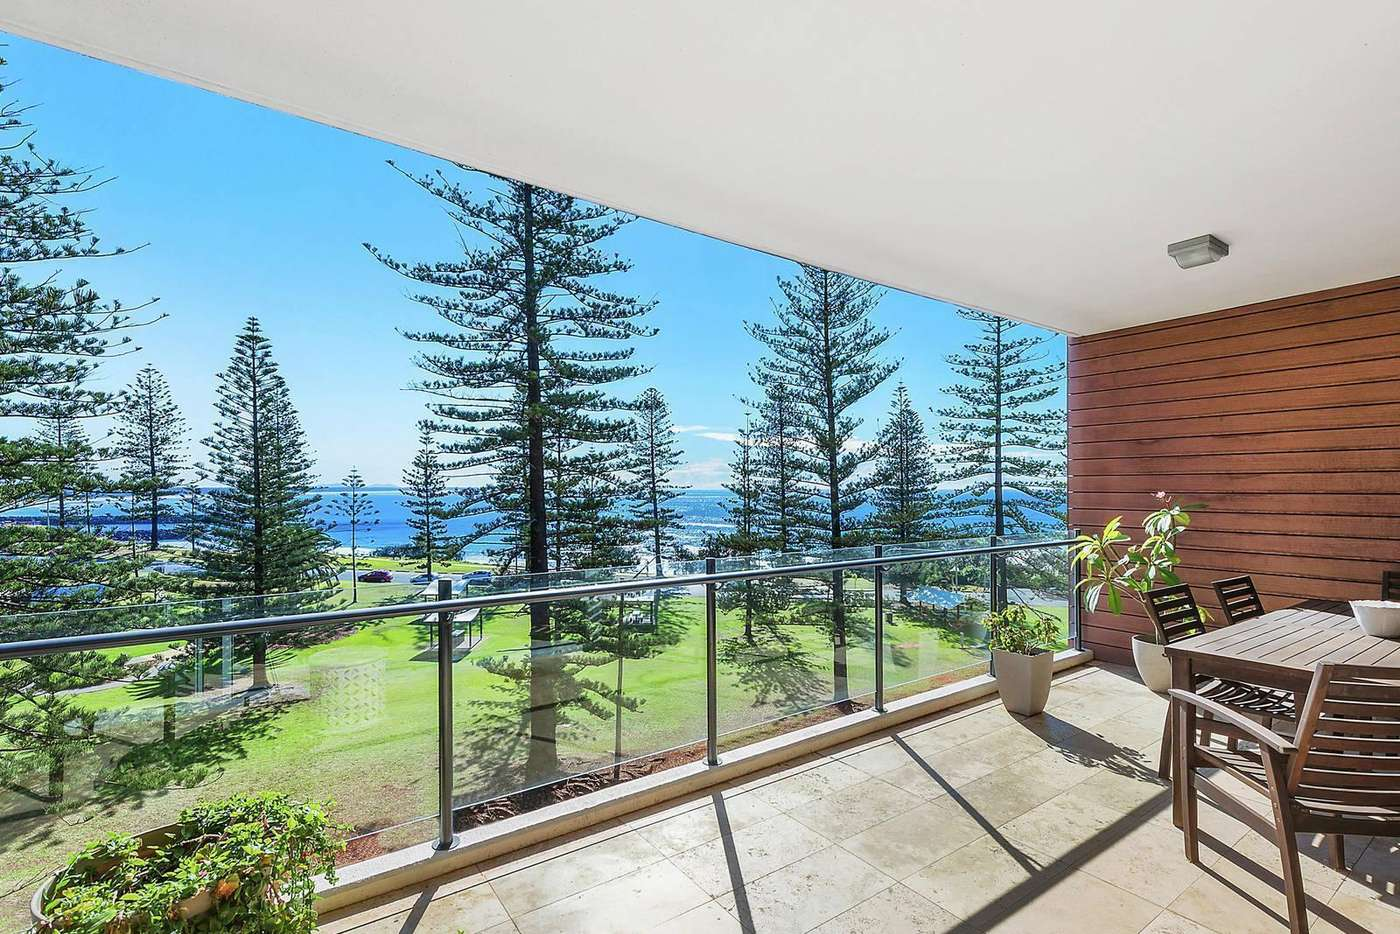 Main view of Homely apartment listing, 401/44 William Street, Port Macquarie NSW 2444